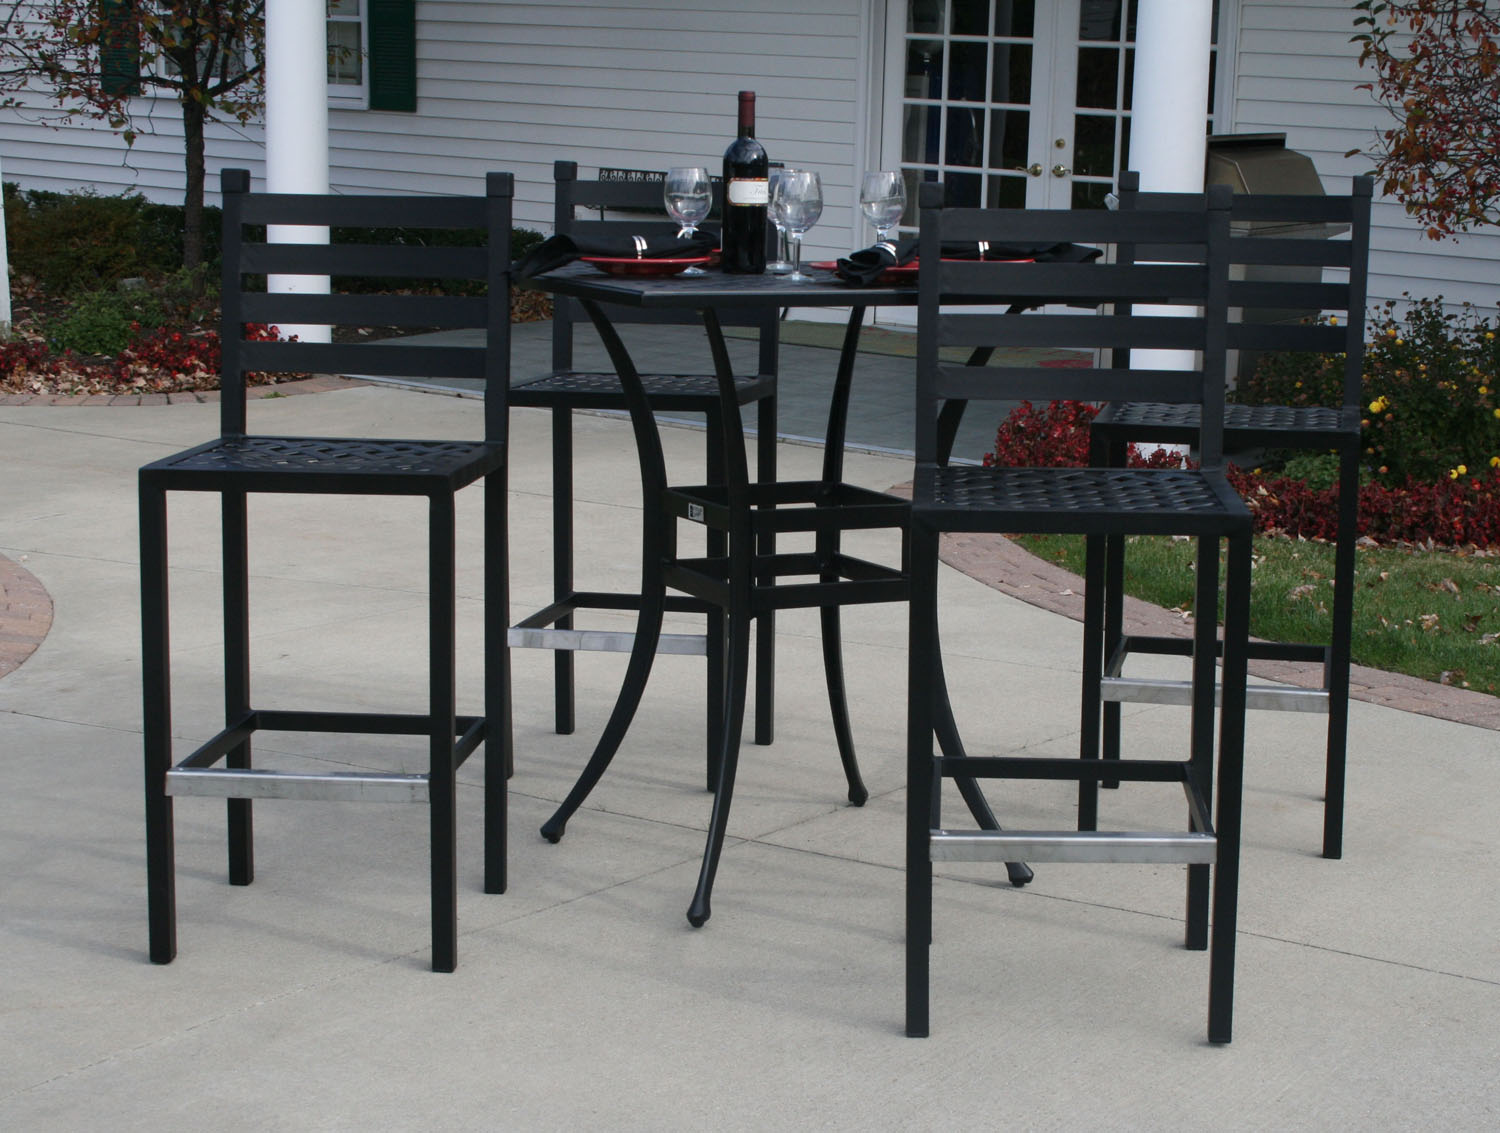 Ansley Luxury 4-Person All Welded Cast Aluminum Patio Furniture Bar Height Set W/36  Square Bar Table & Ansley Luxury 4-Person All Welded Cast Aluminum Patio Furniture Bar ...